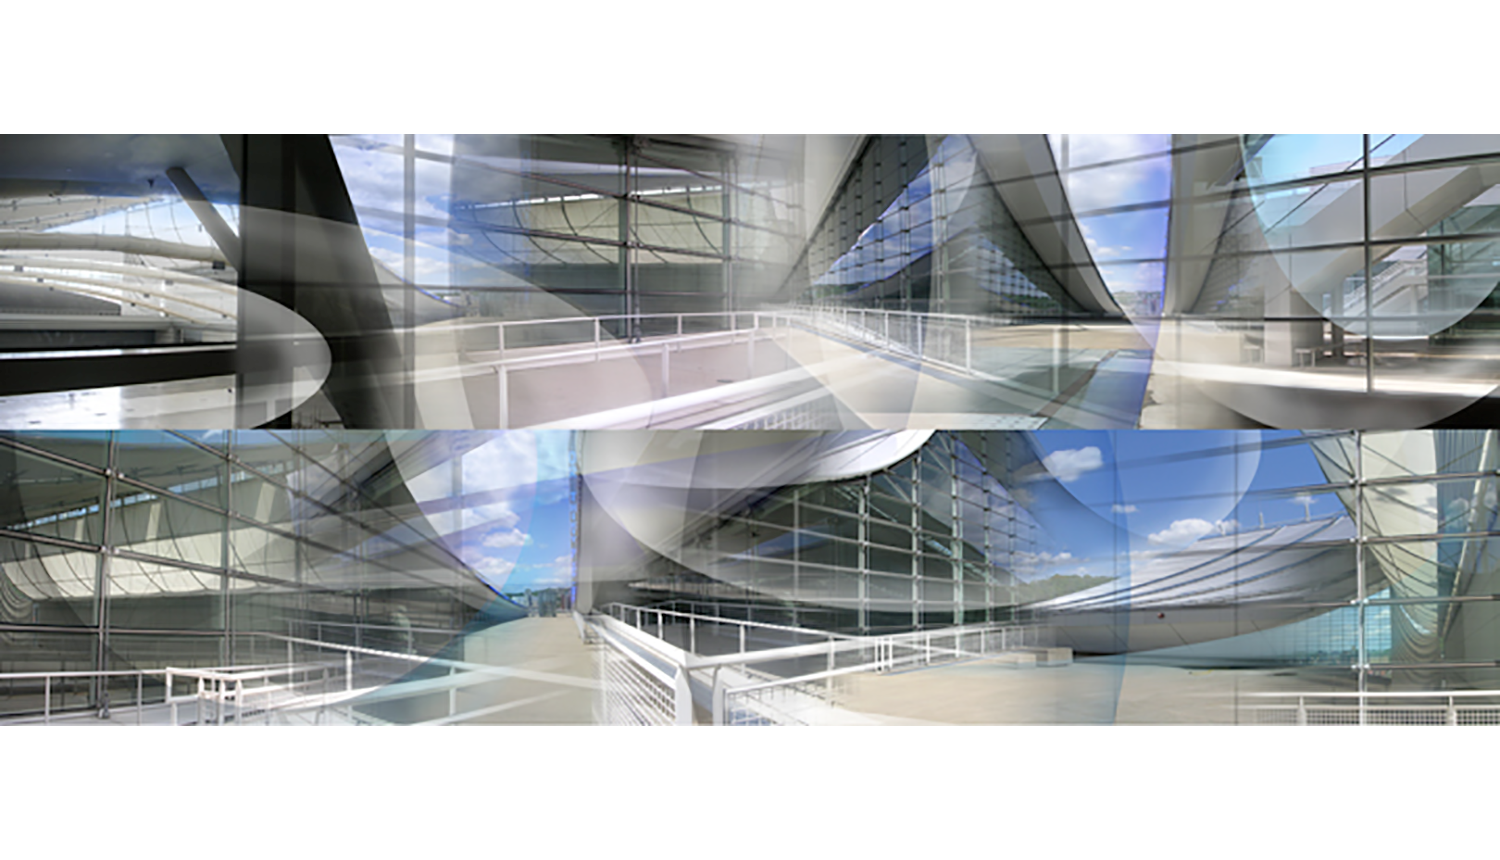 """Lawrence Convention Center,  2008, Digital print on paper, 20 x 50.75"""""""